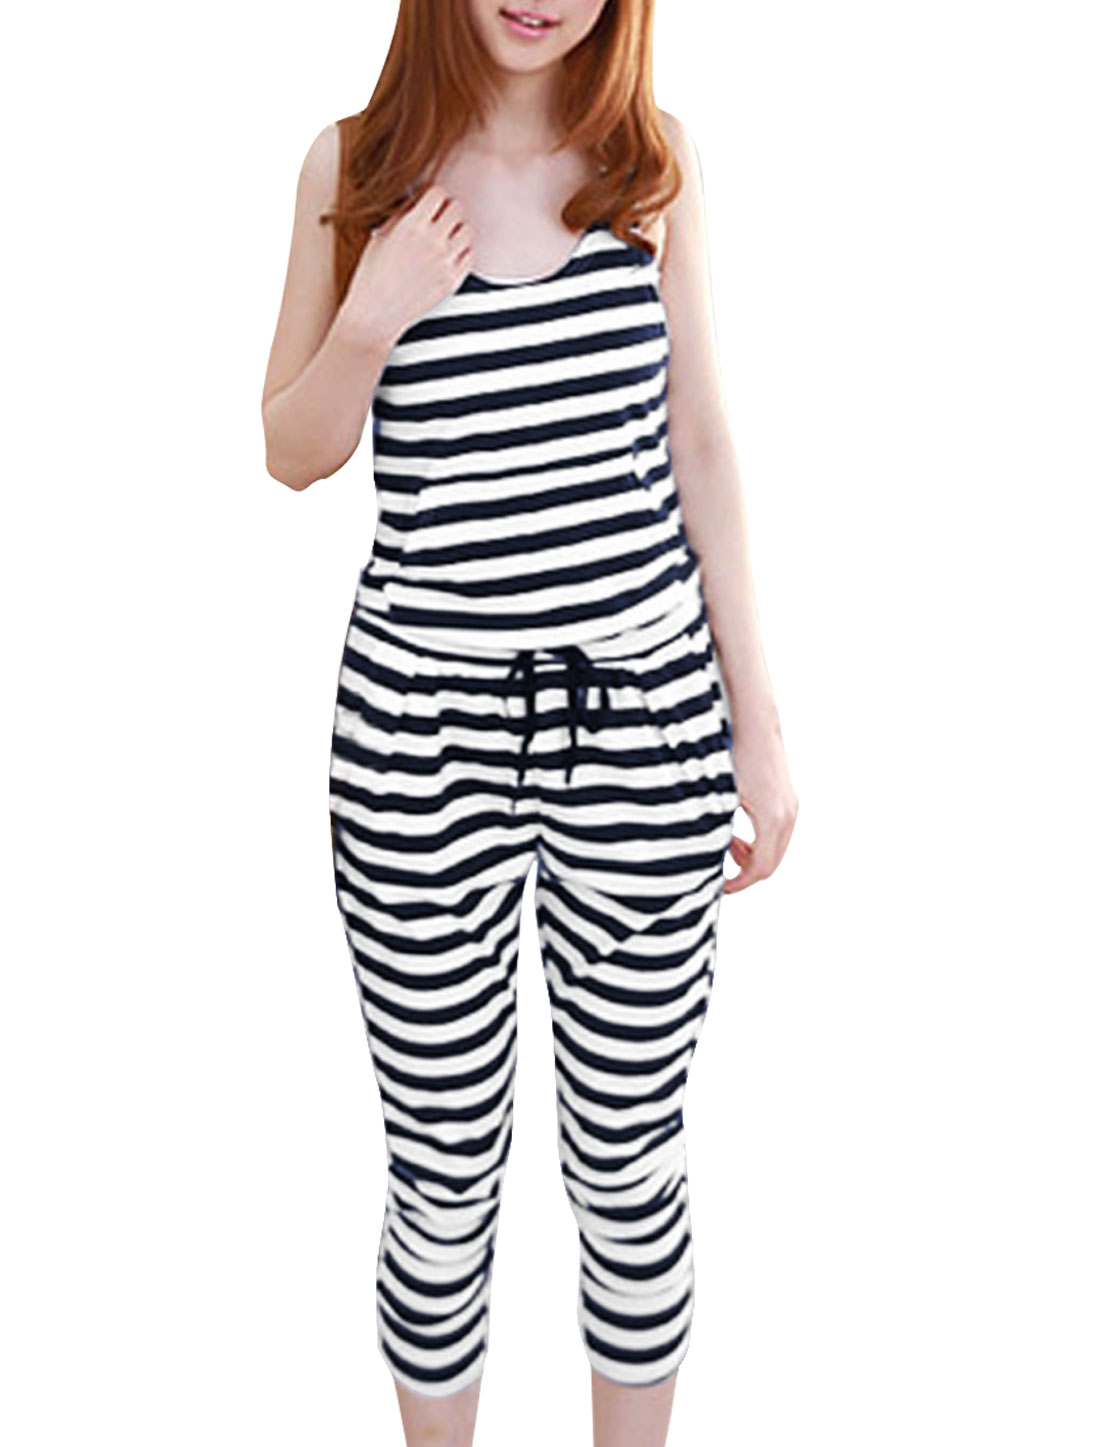 Lady Dark Blue White Sleeveless Stripes Pattern w Pockets Jumpsuit XS